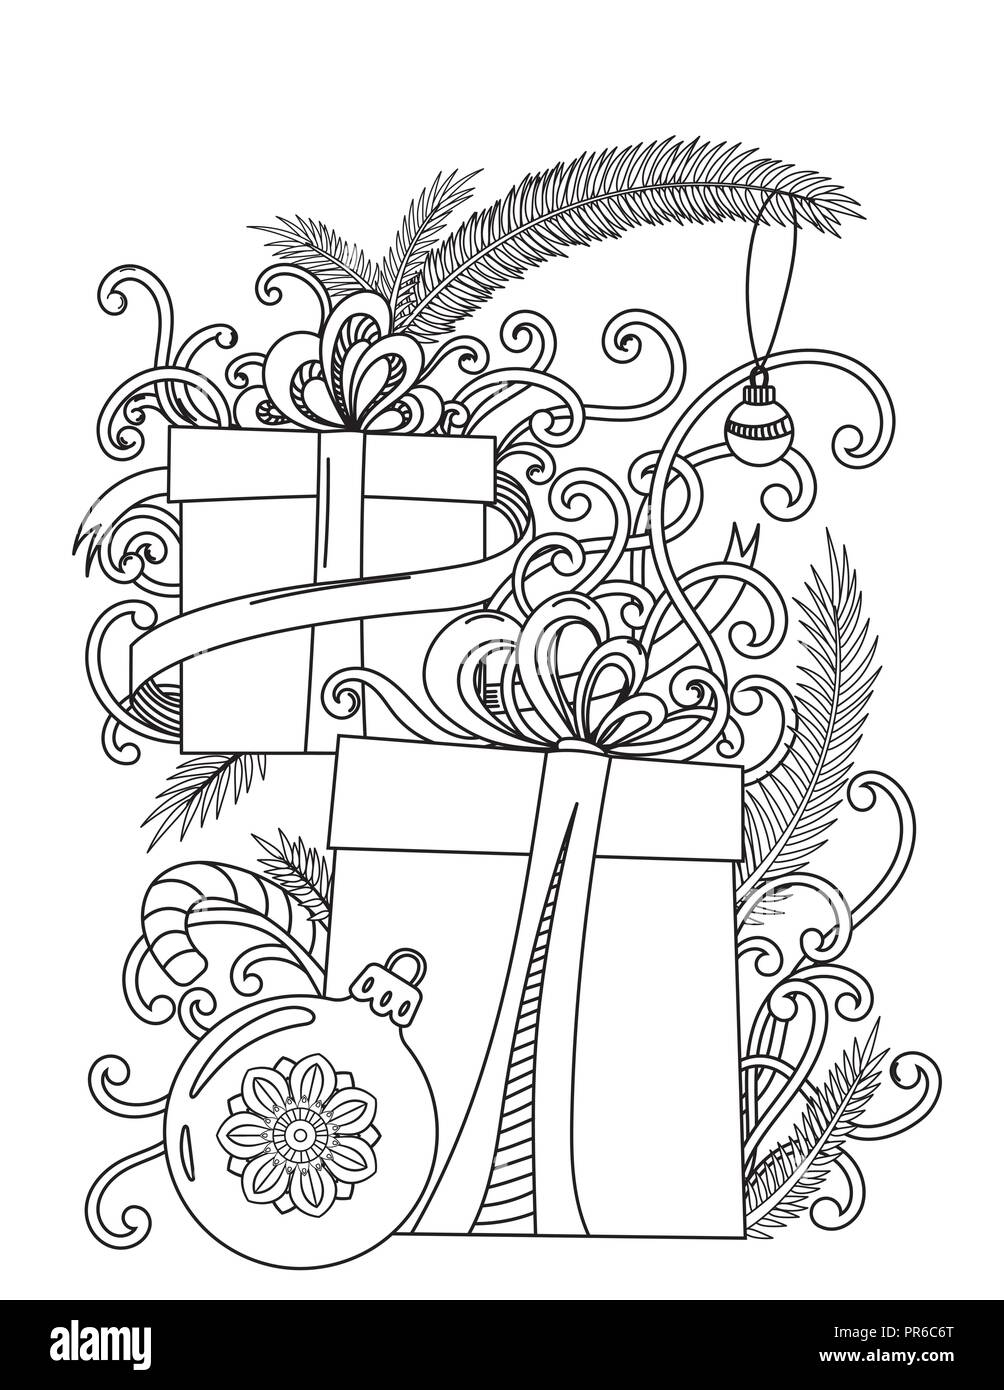 christmas coloring page adult coloring book holiday gifts and decore hand drawn vector illustration